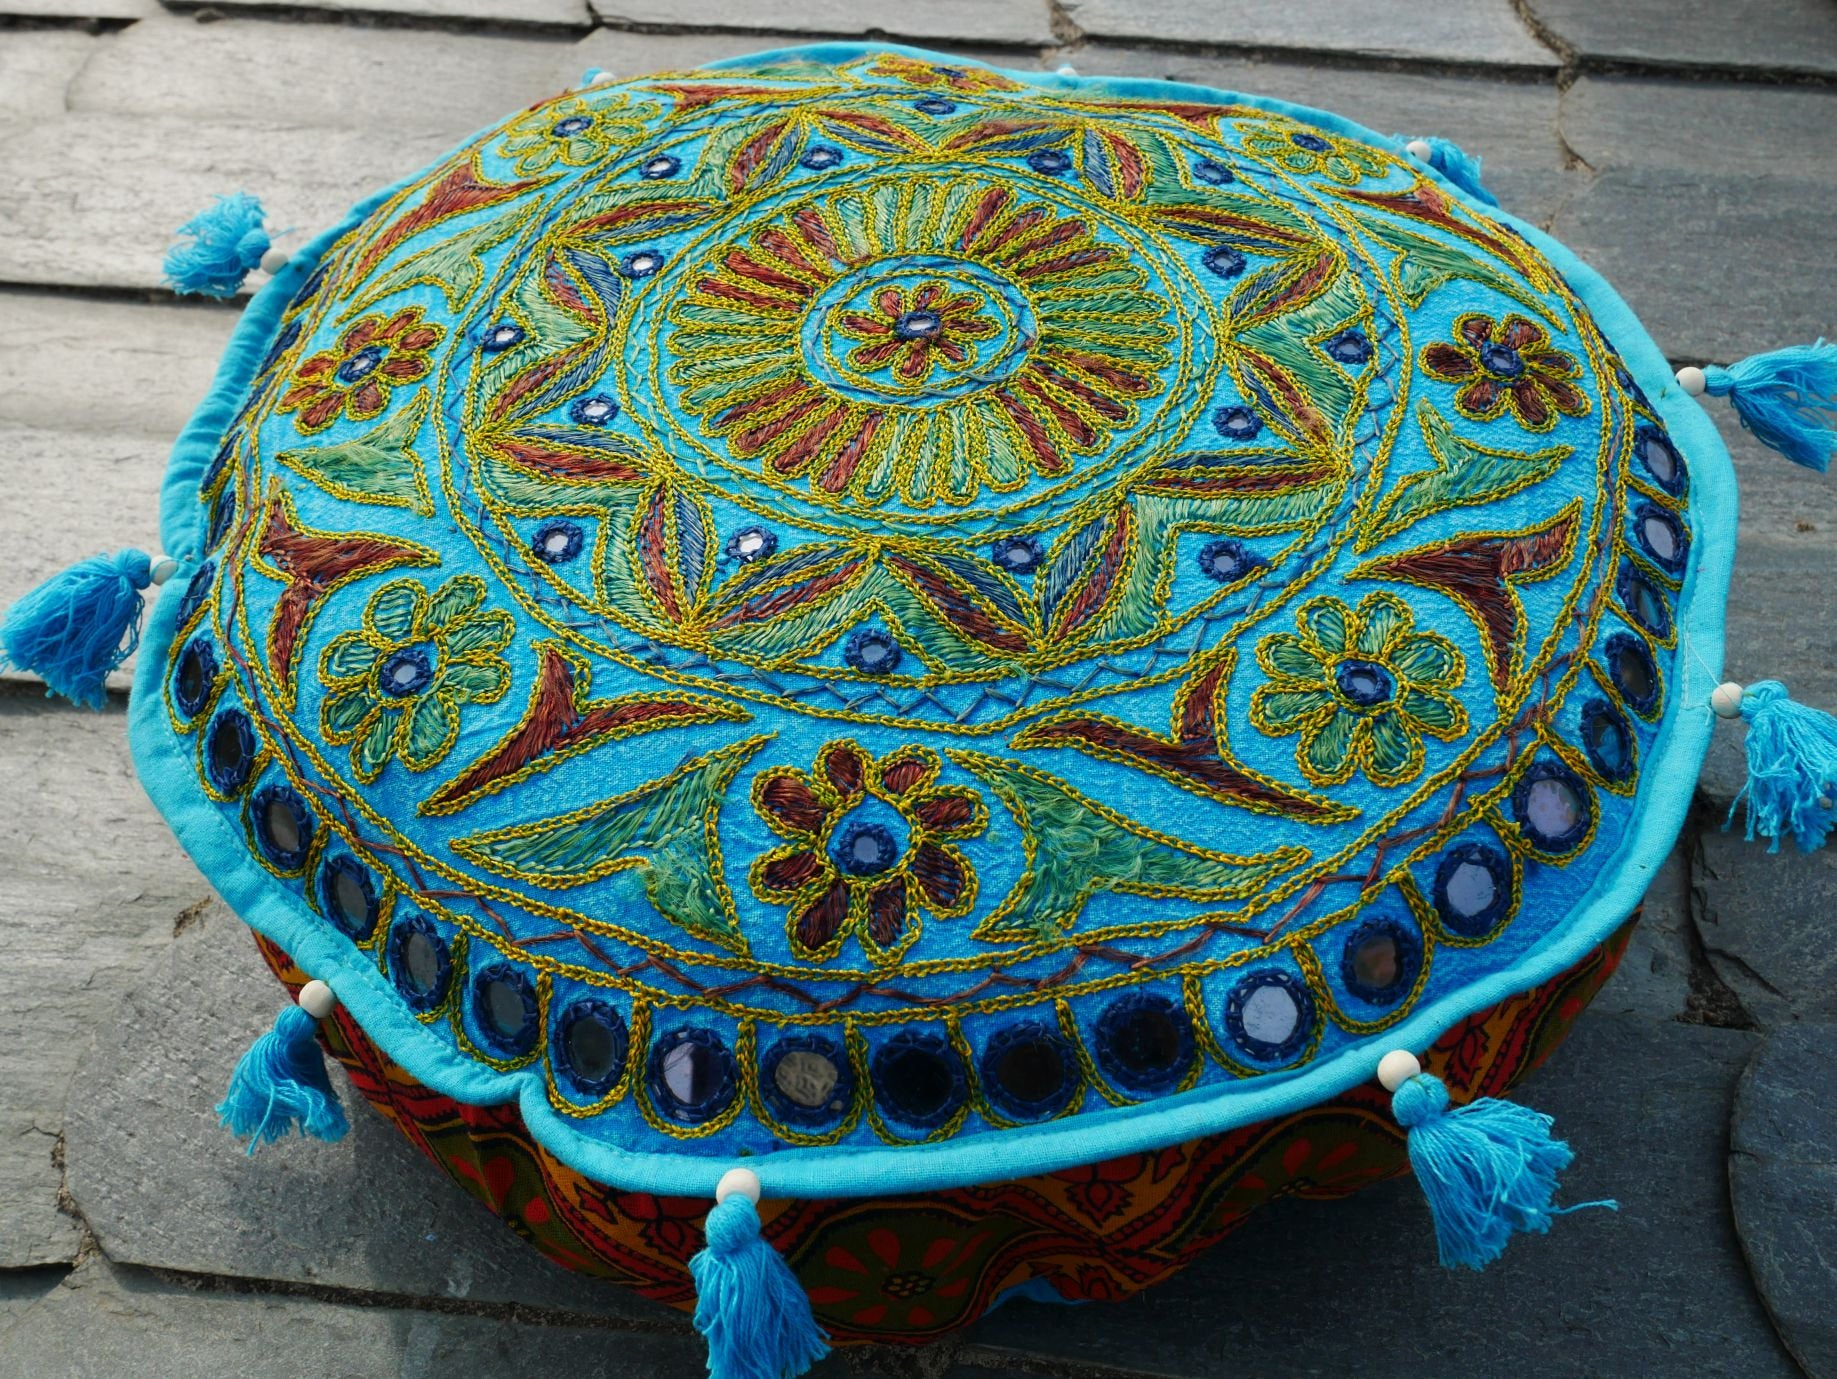 Meditation cushion - round floor cushion - decorative cushion - boho floor pillow - Mandala